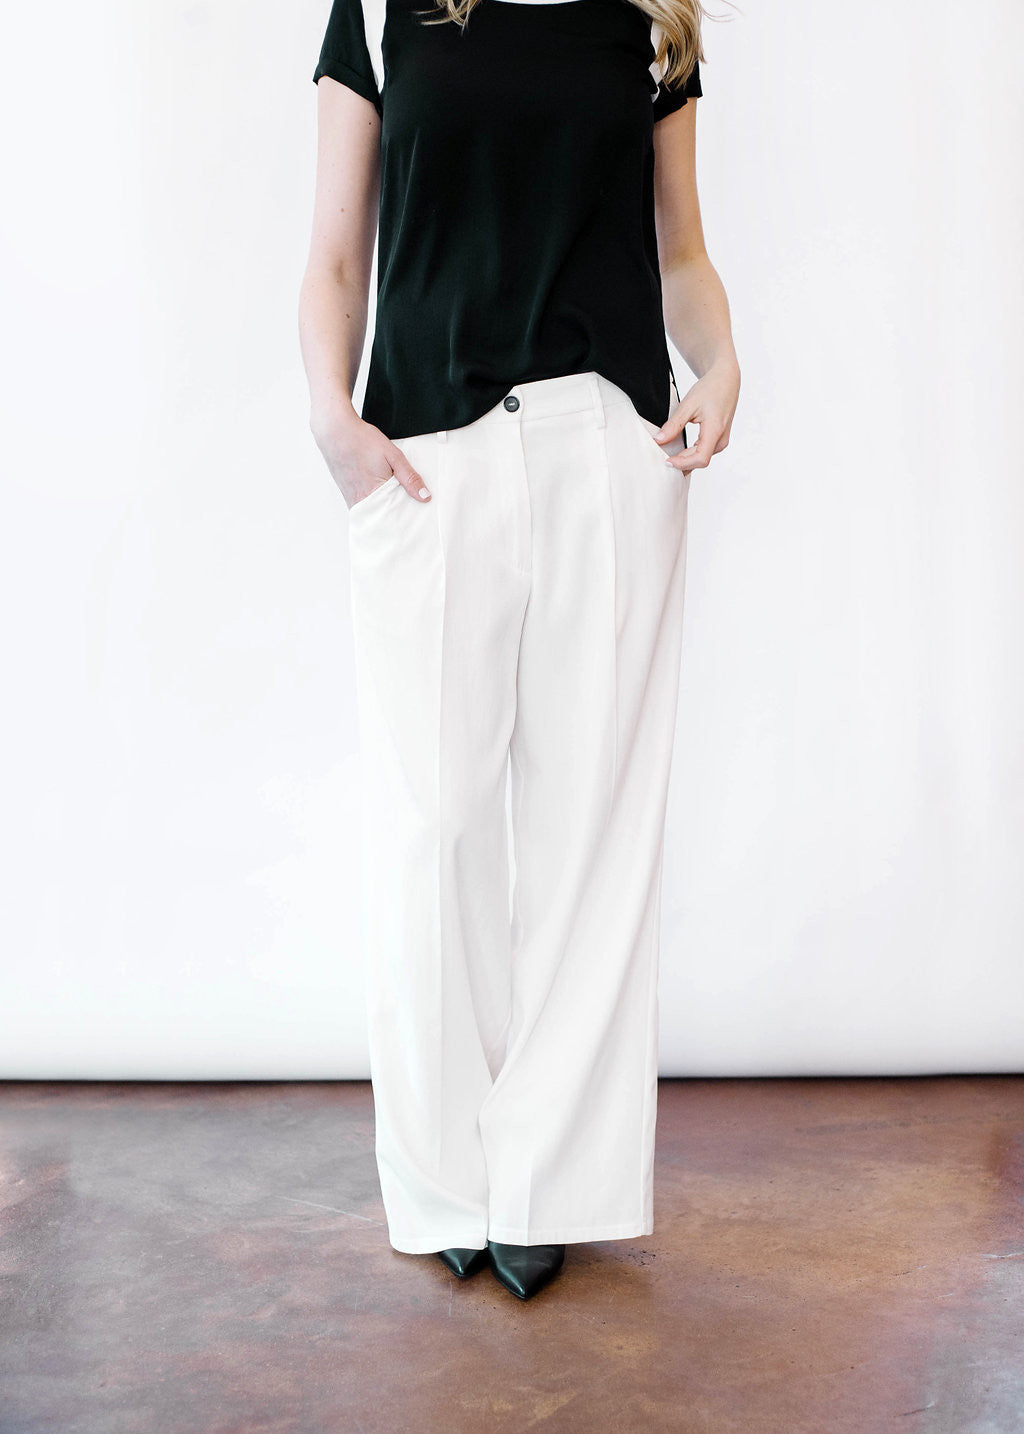 Our Style Essentials: The White Pant